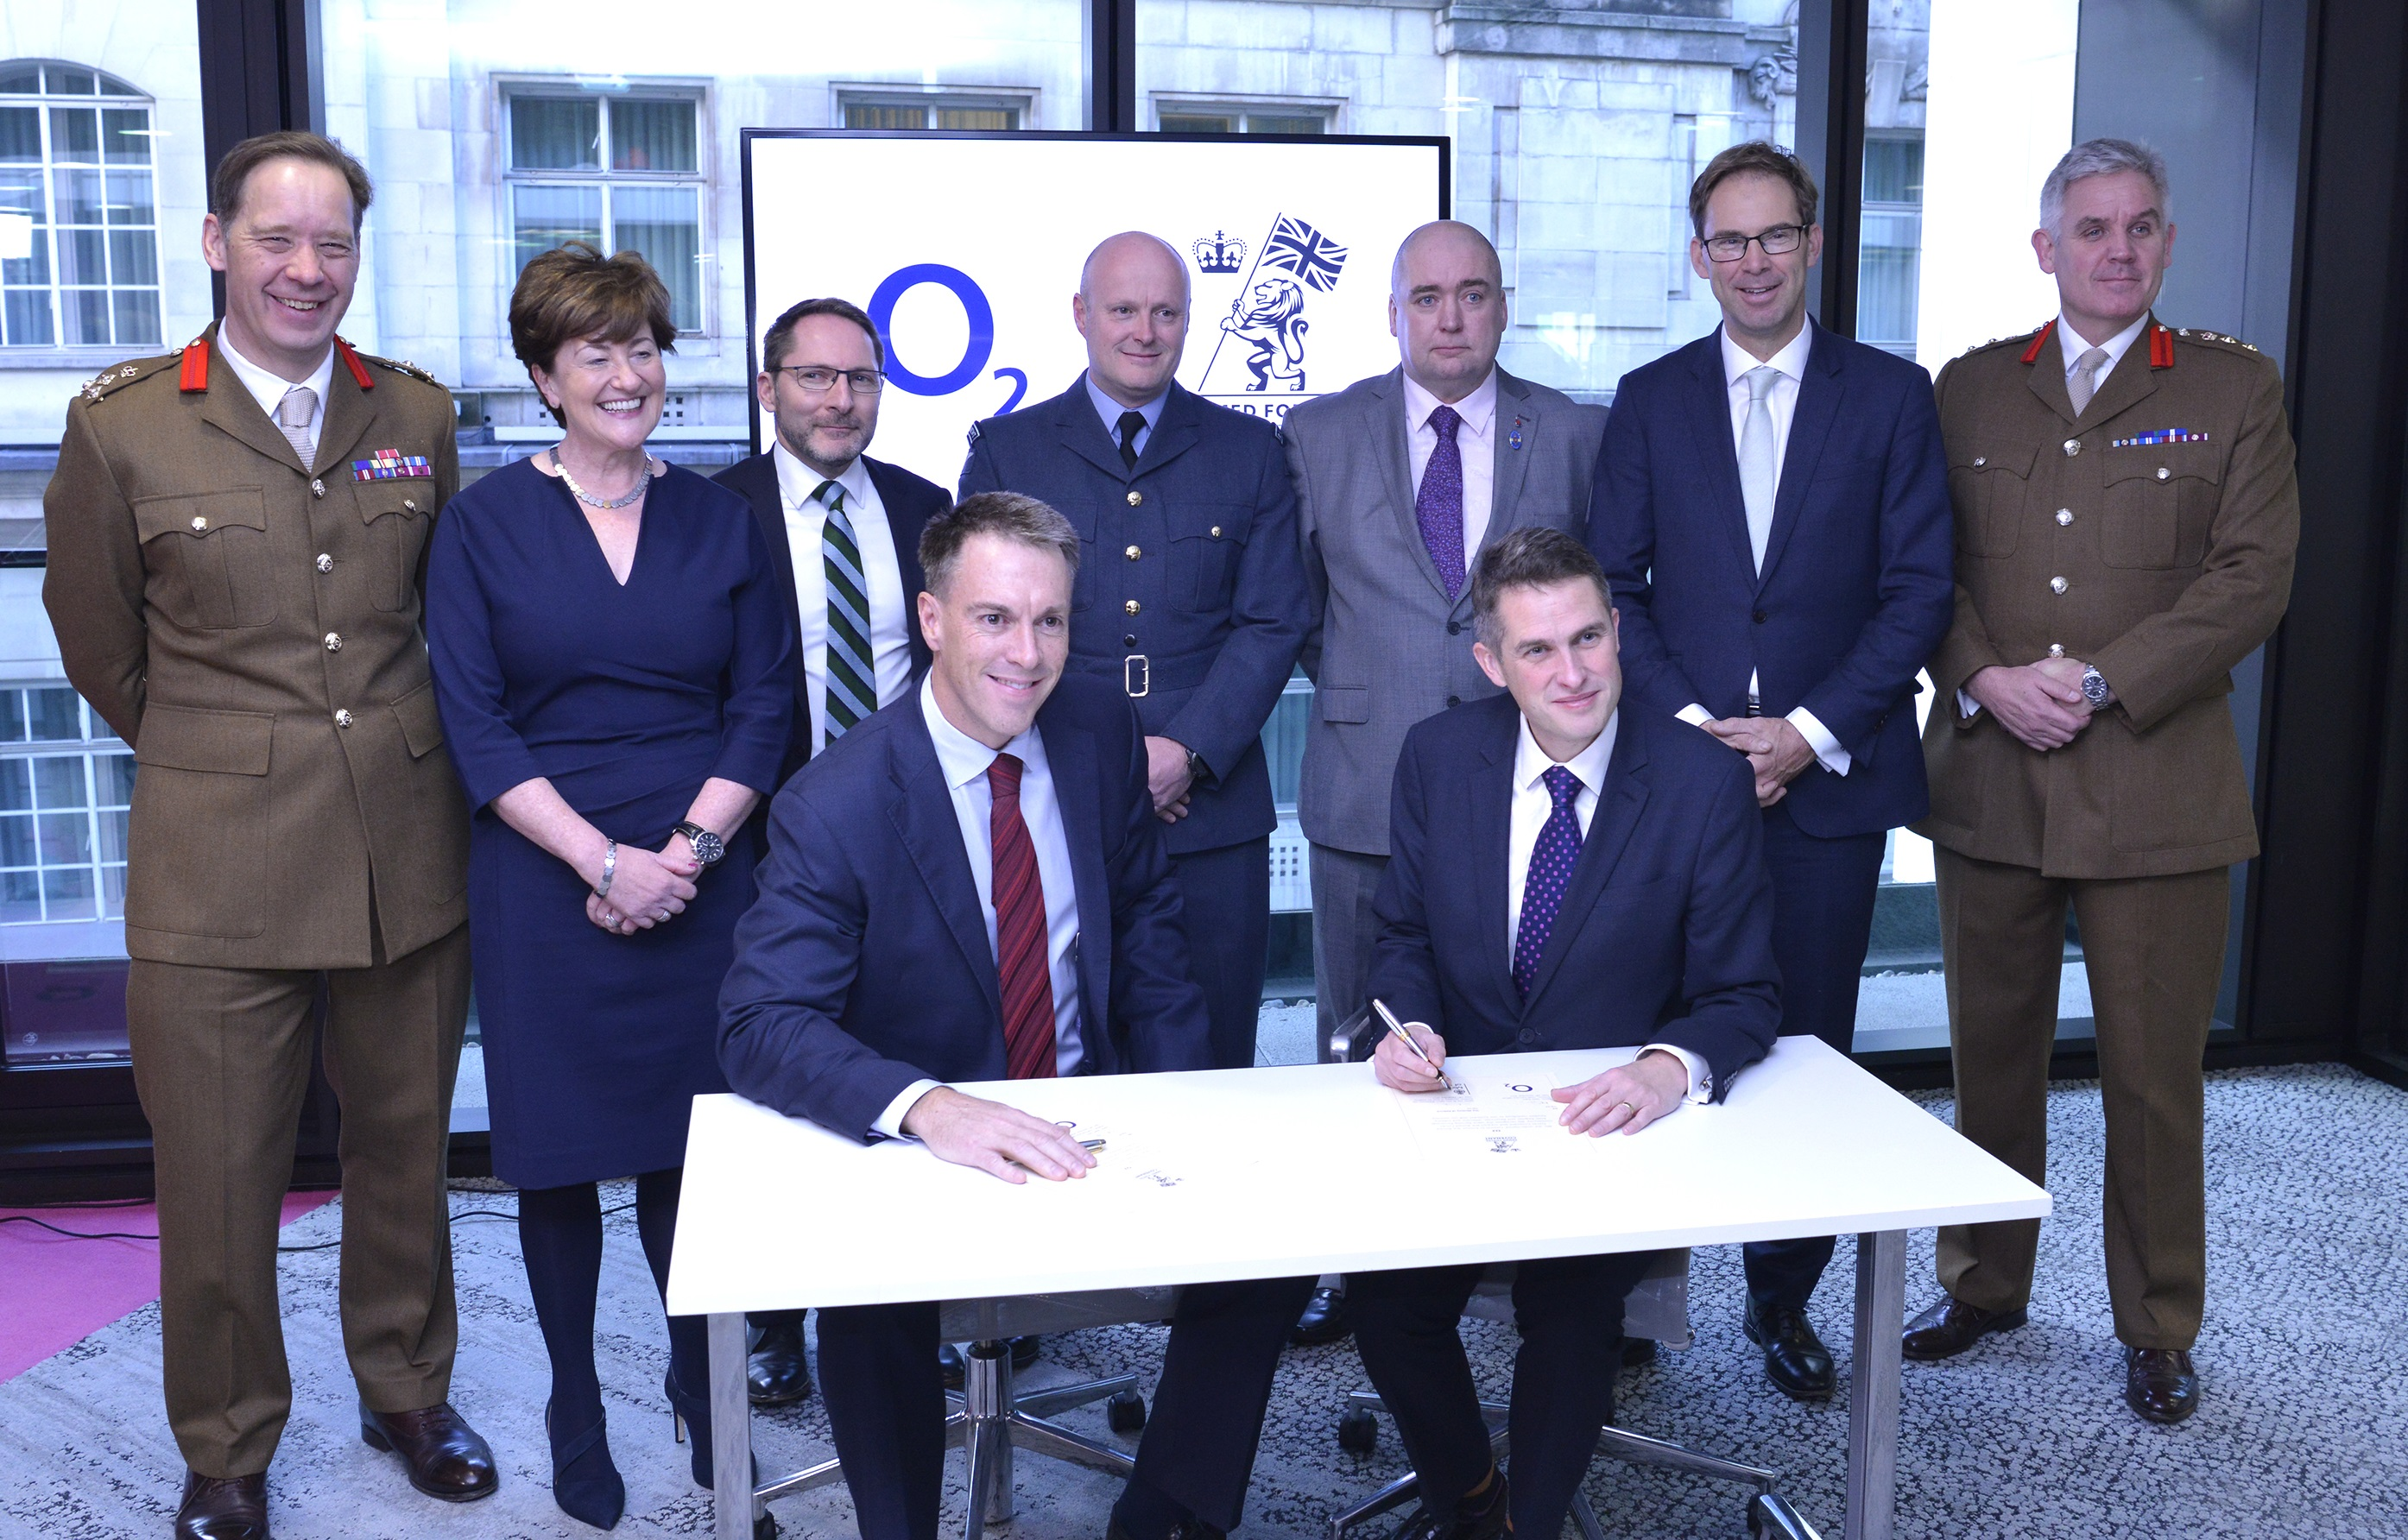 Image of O2 signing the Armed Forces Covenant